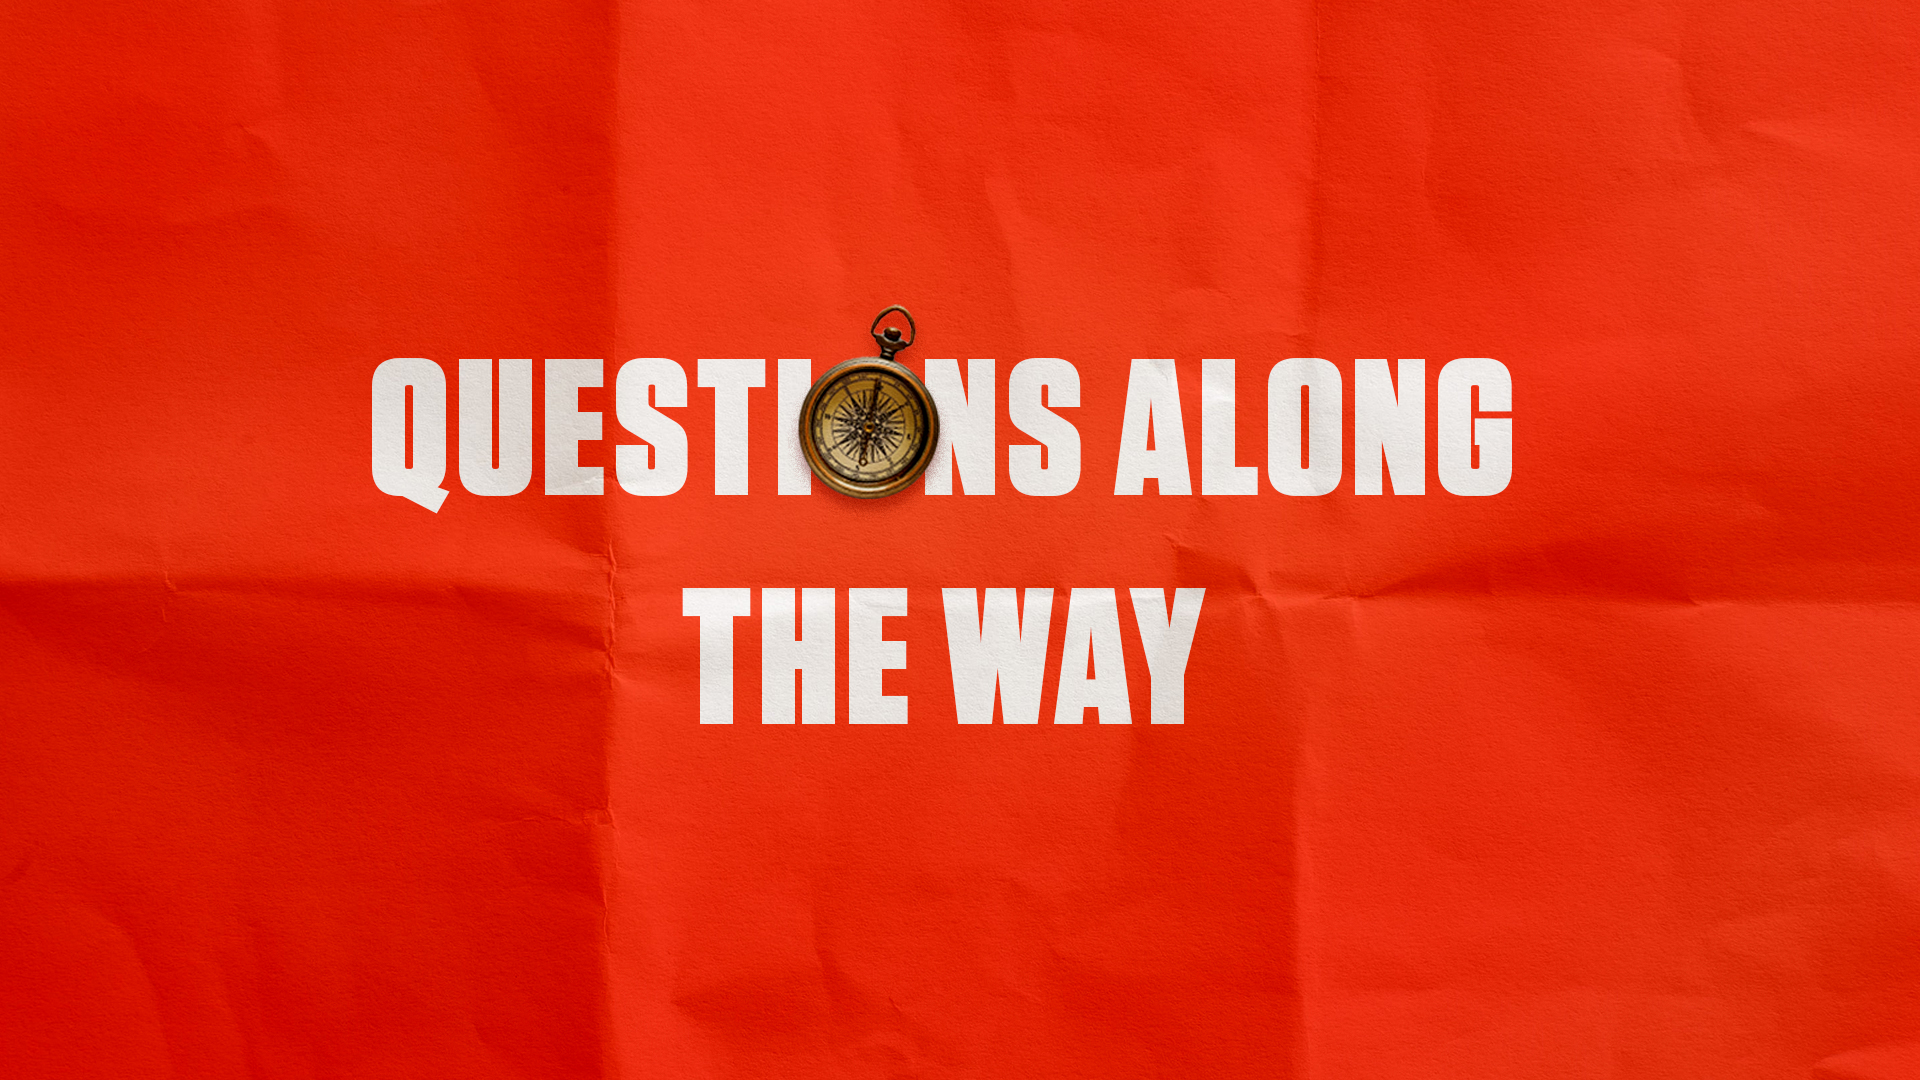 Questions Along The Way